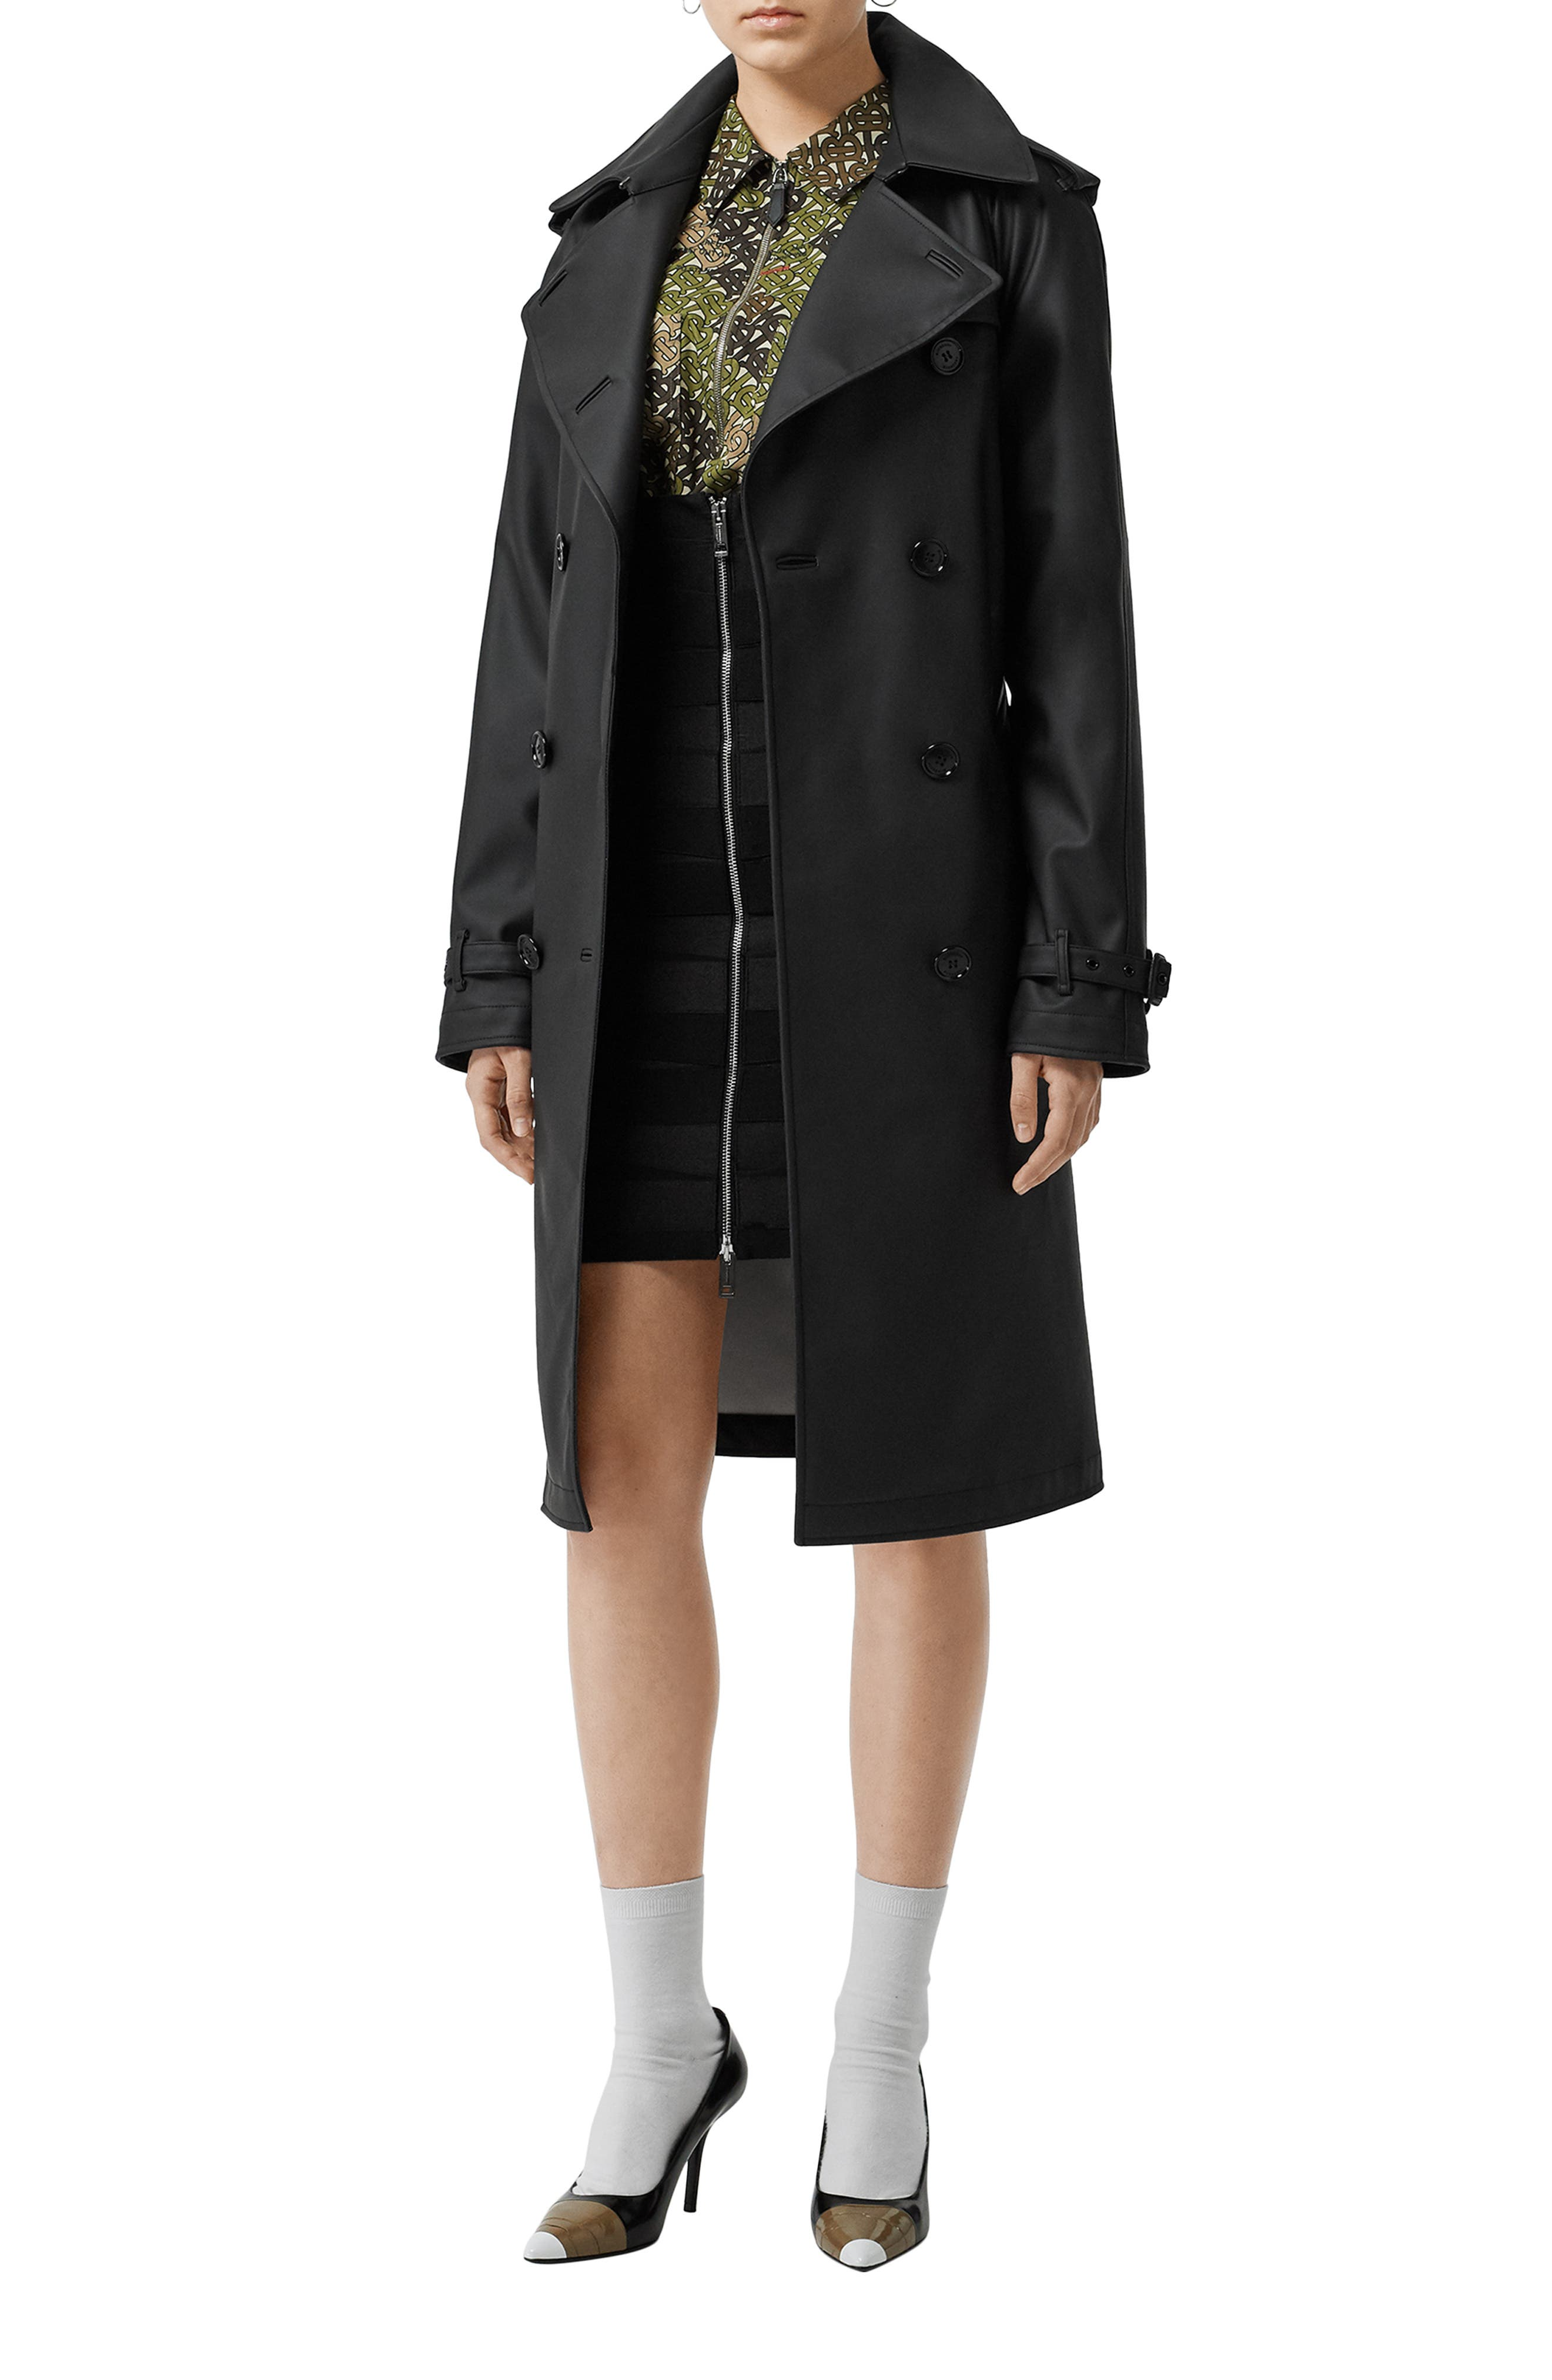 BURBERRY, Curradine Waterproof Rubberized Trench Coat, Alternate thumbnail 3, color, BLACK / WHITE